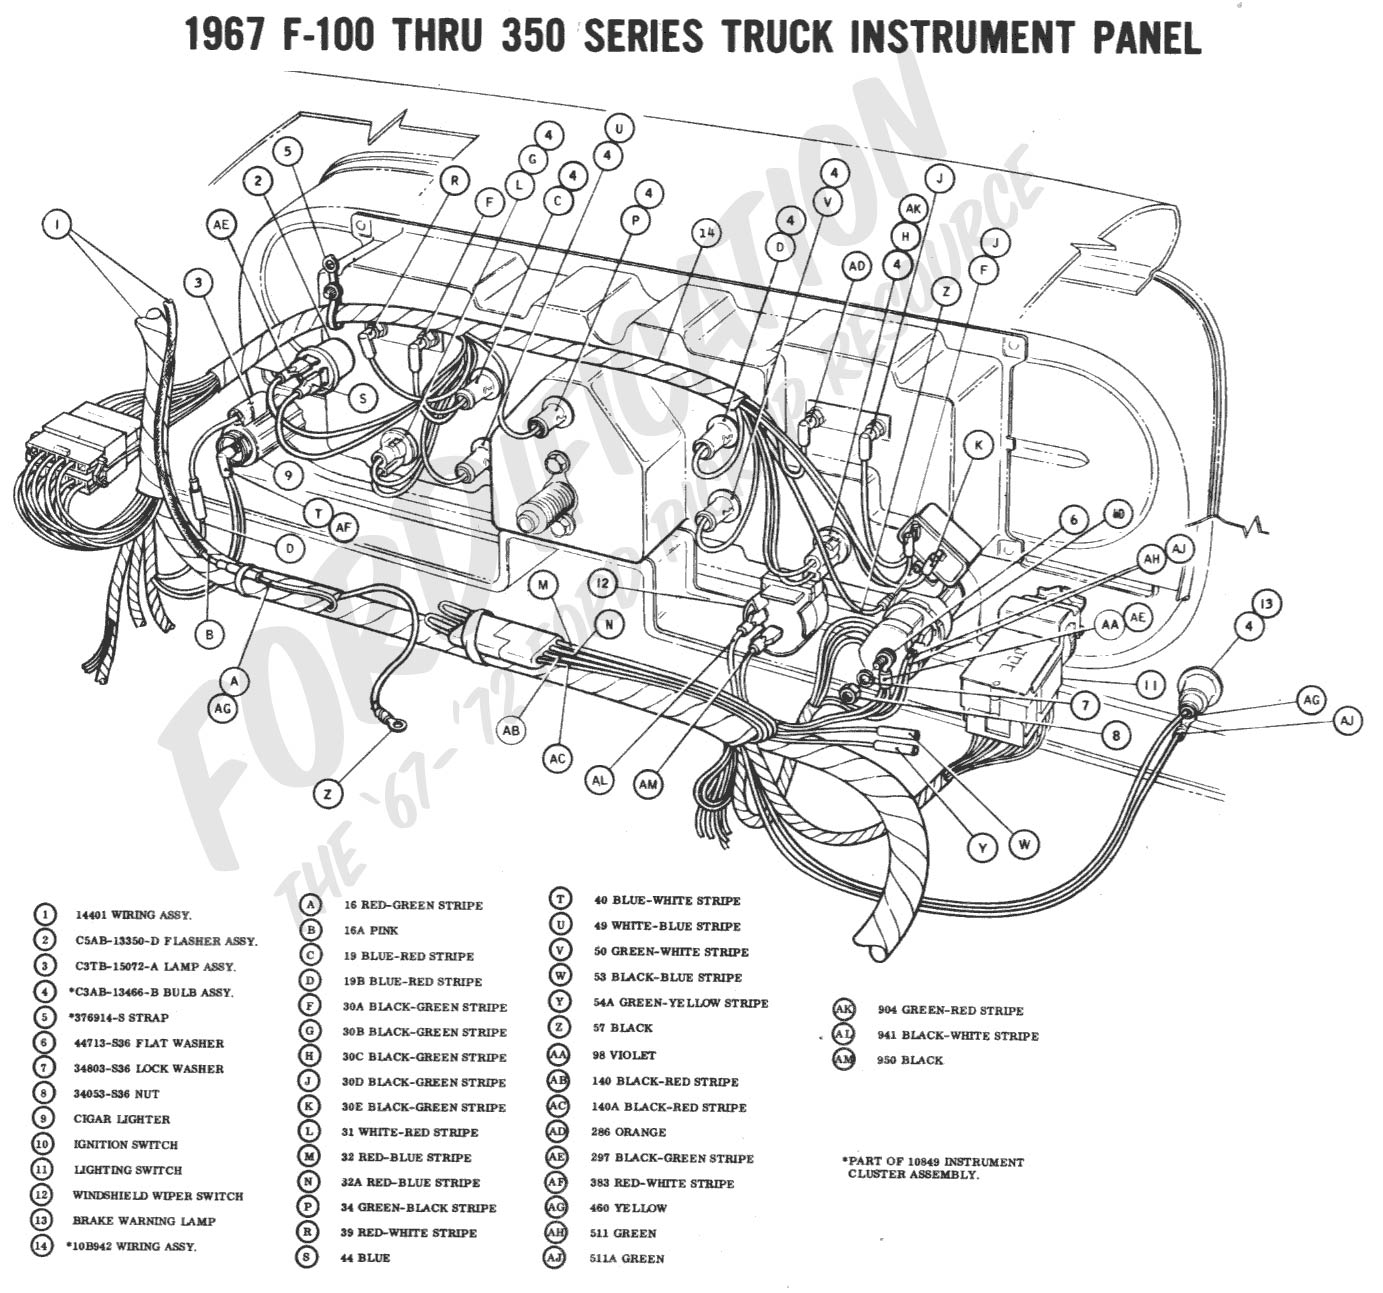 289 v8 engine diagram